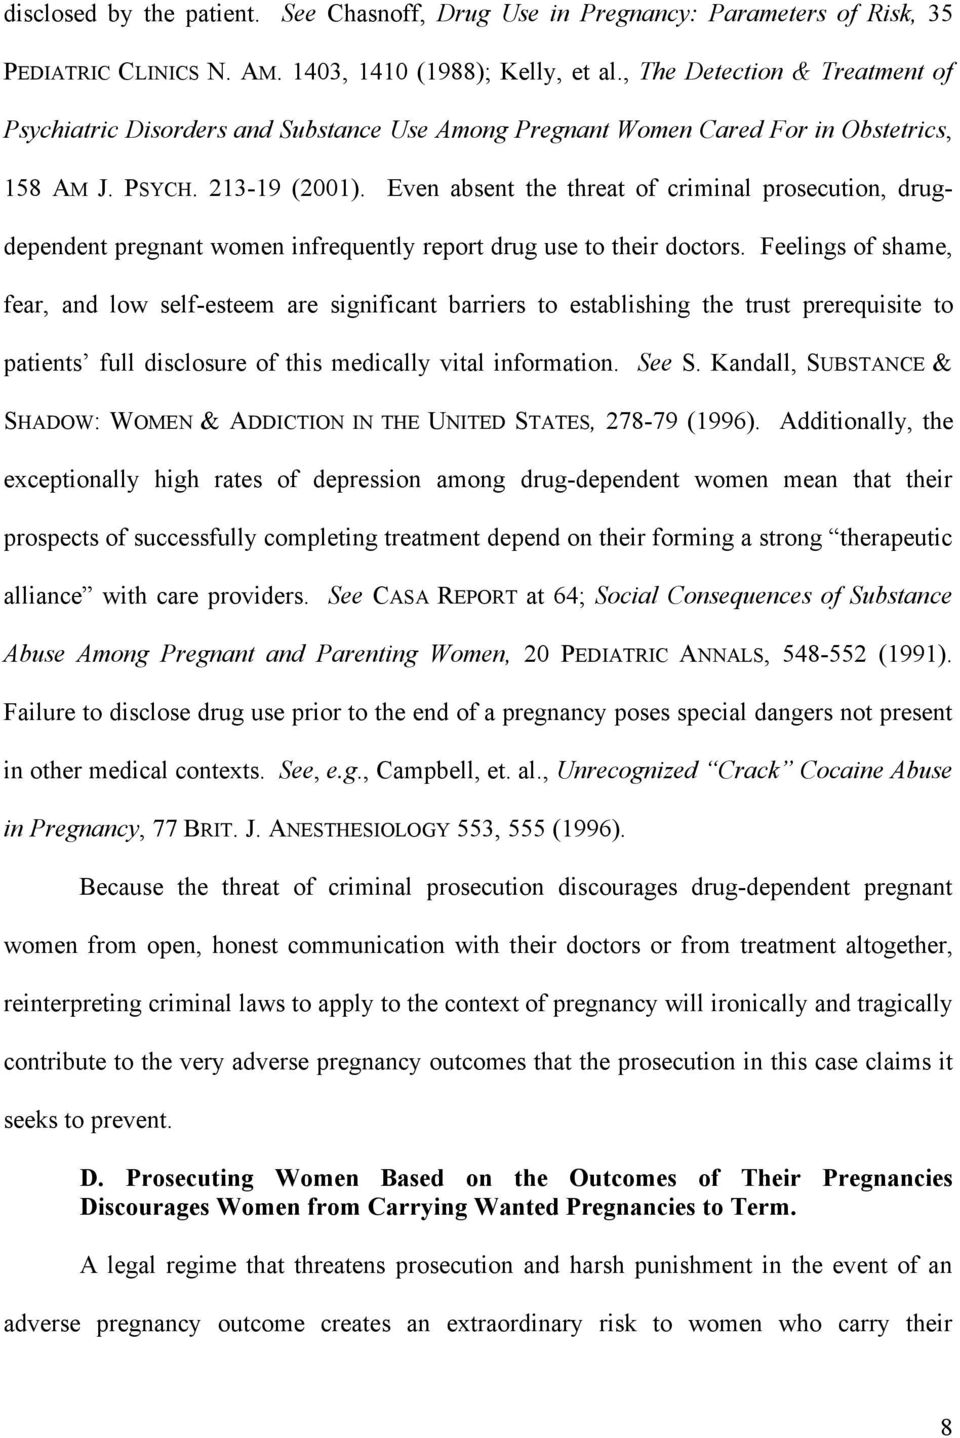 Even absent the threat of criminal prosecution, drugdependent pregnant women infrequently report drug use to their doctors.